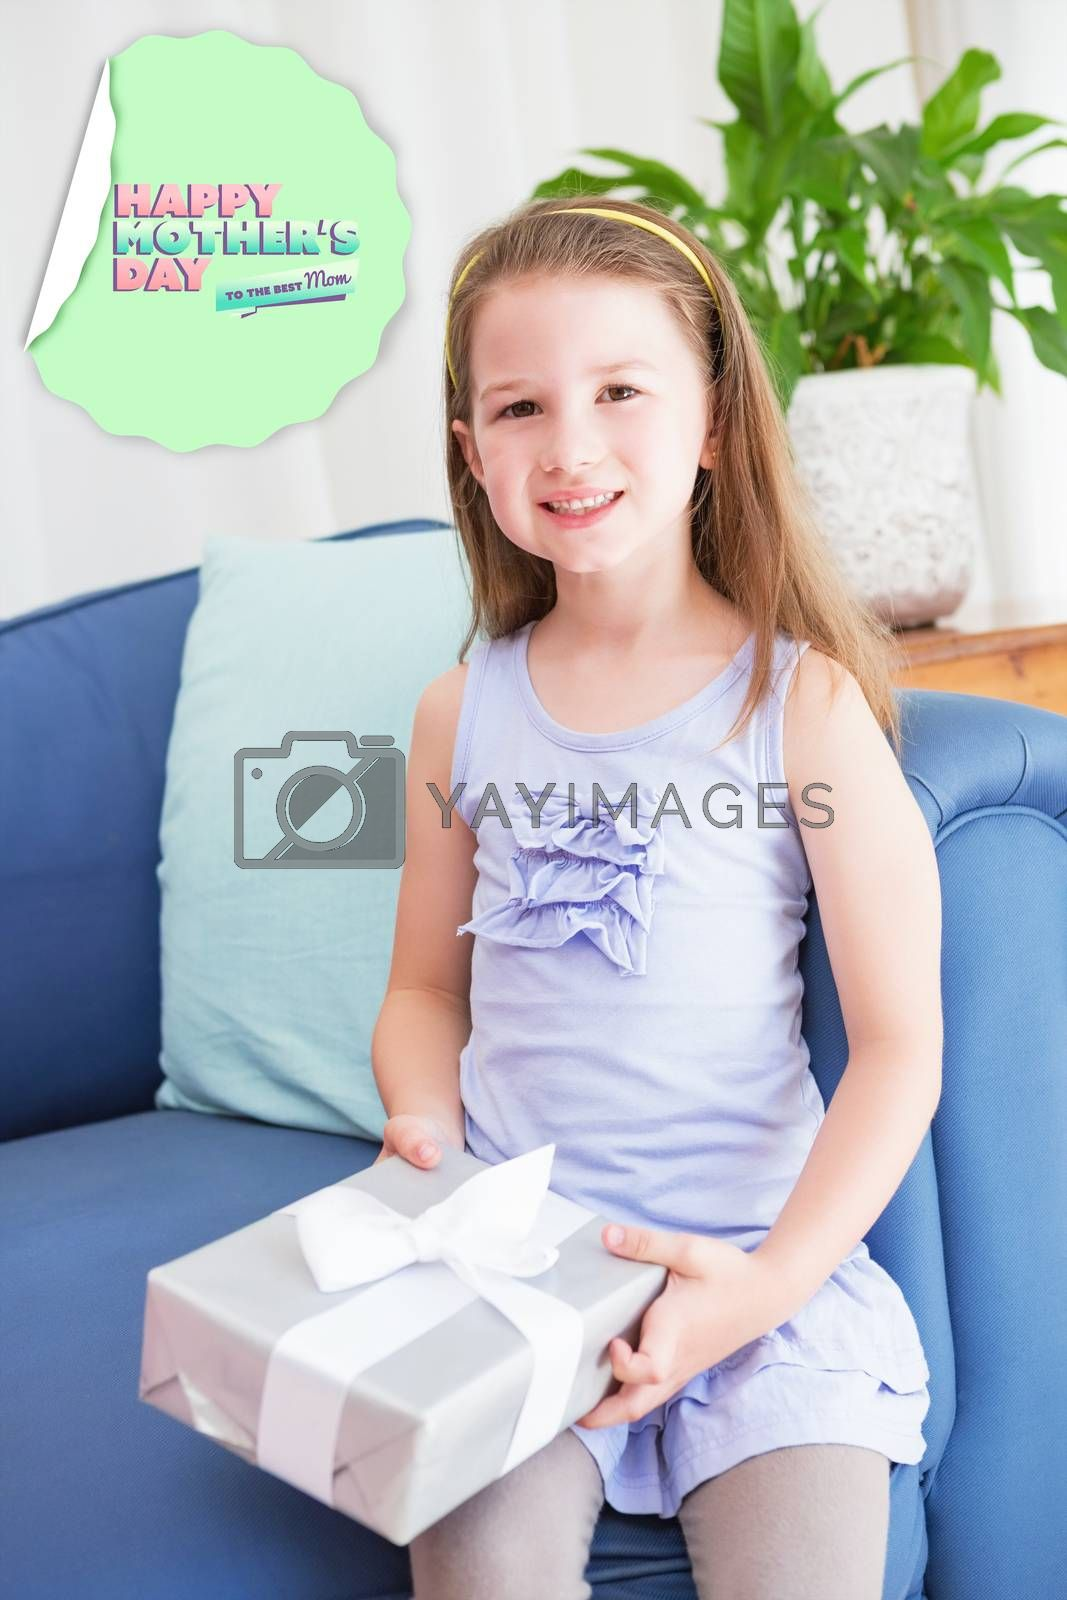 mothers day greeting against little girl holding a gift